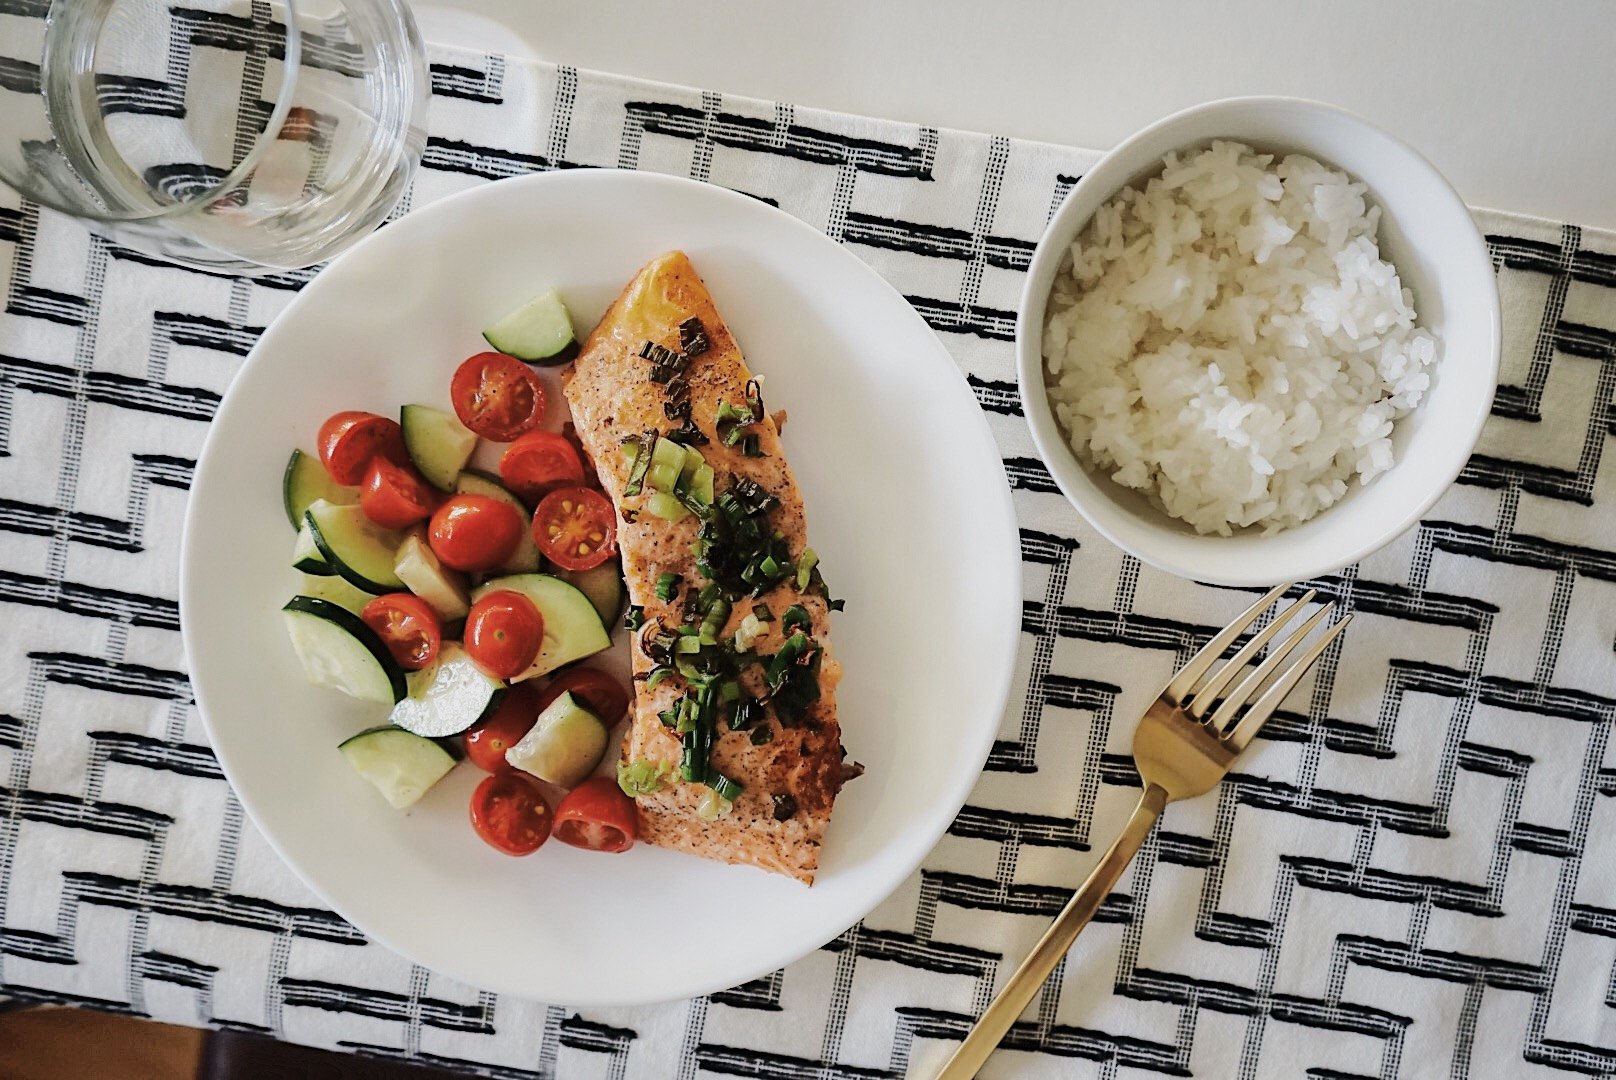 Easy & healthy salmon recipe - Salmon is one of my favorite meals. Check out my go-to recipe. It's delicious, quick and easy!